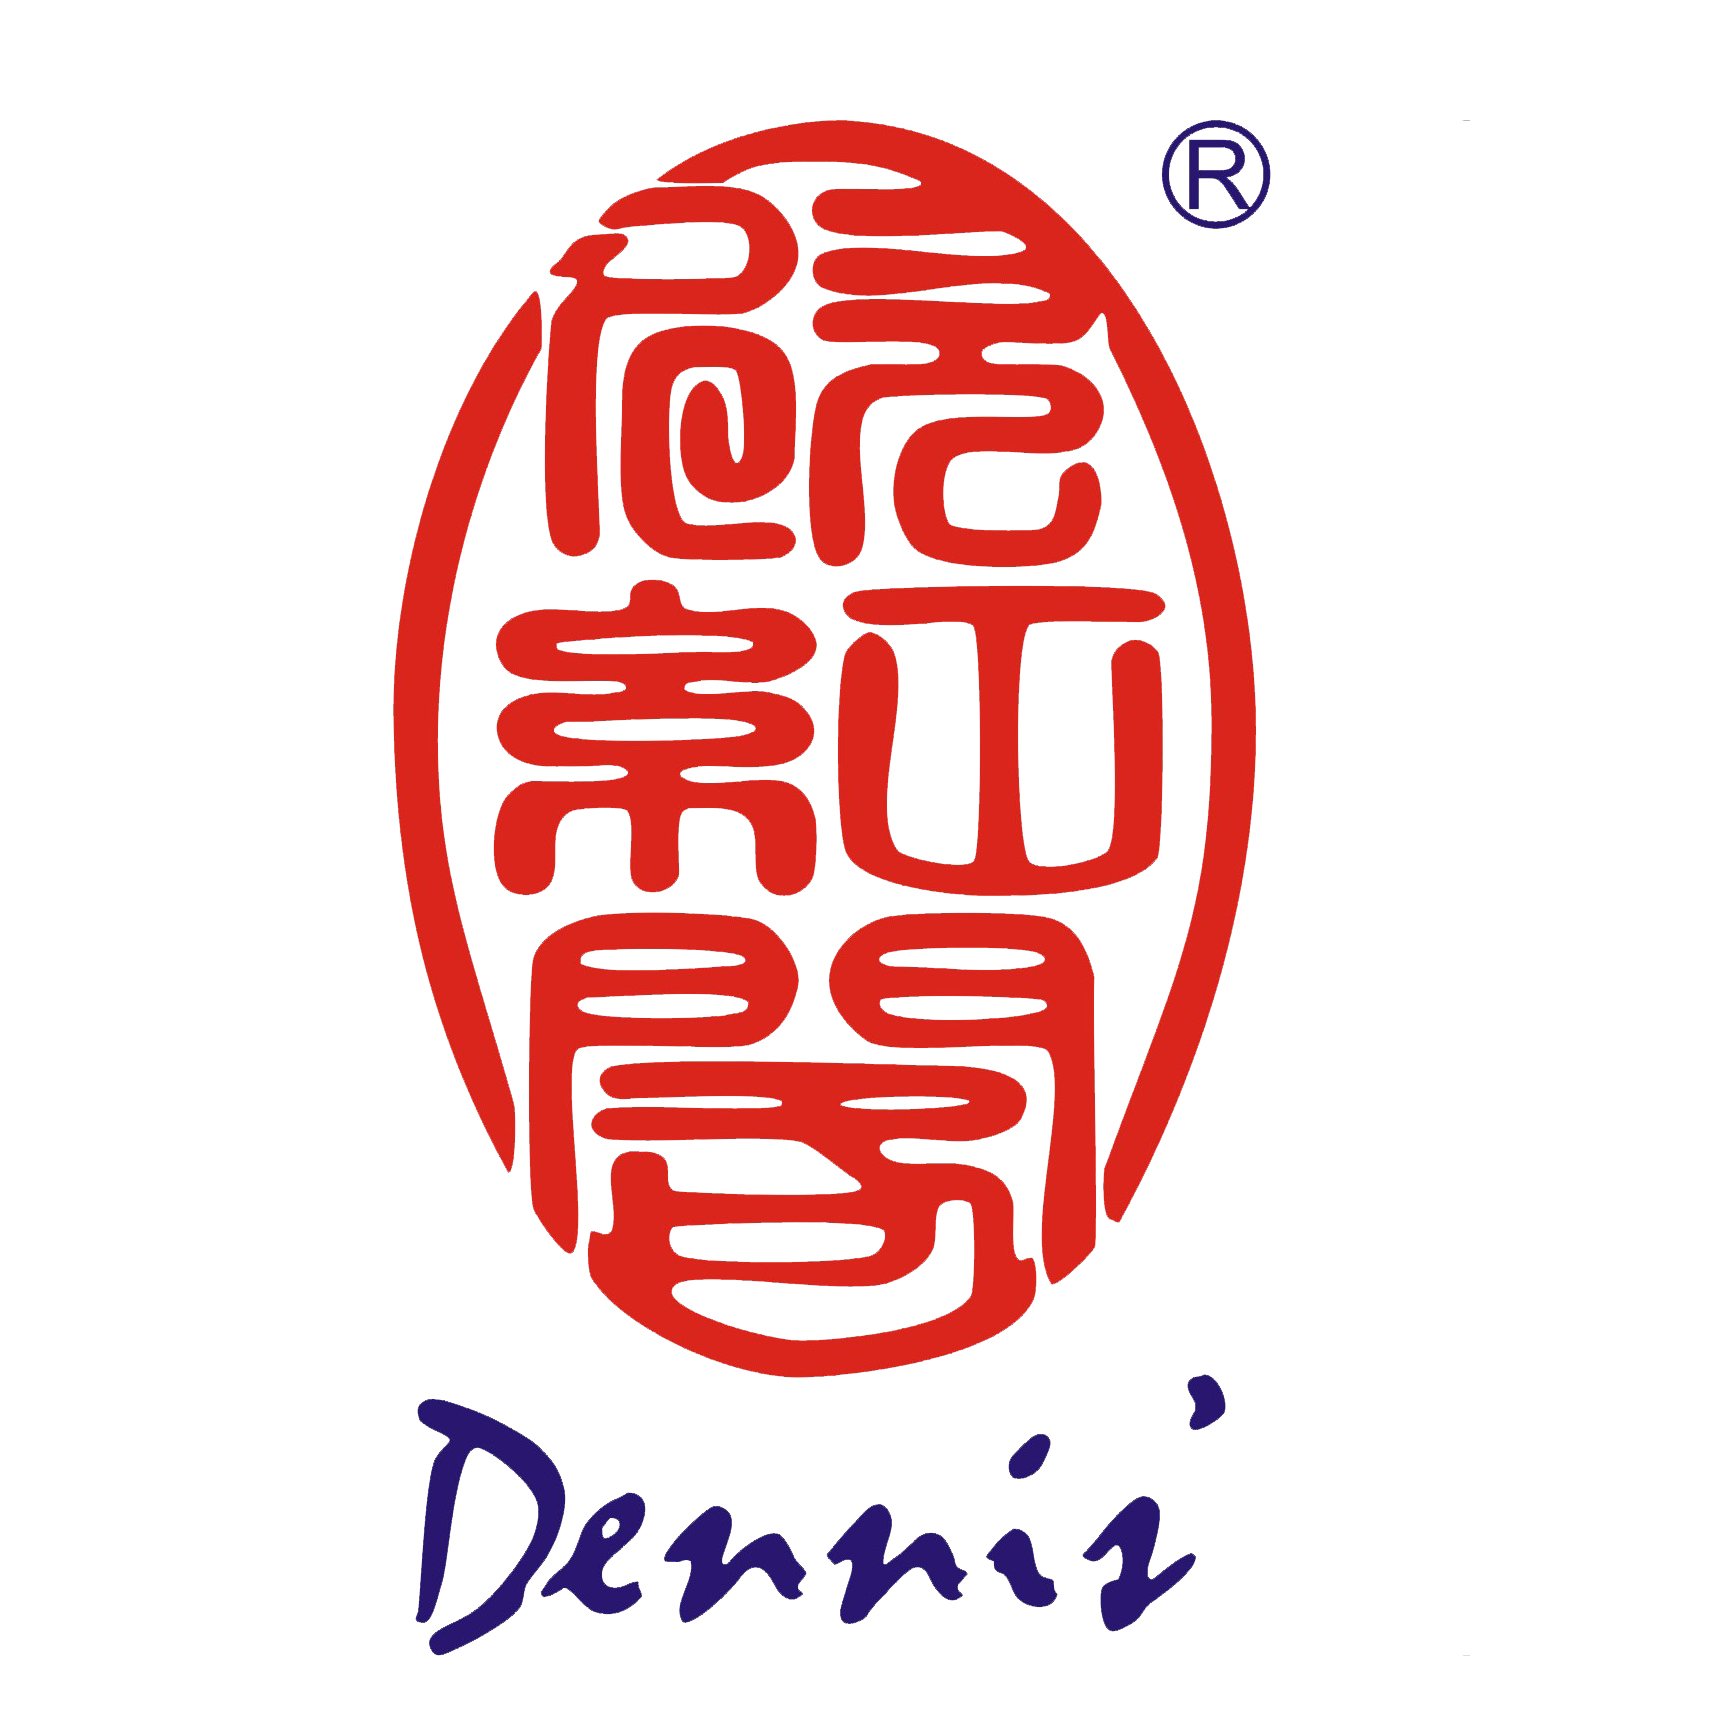 Dennis Ceramics Co.Ltd